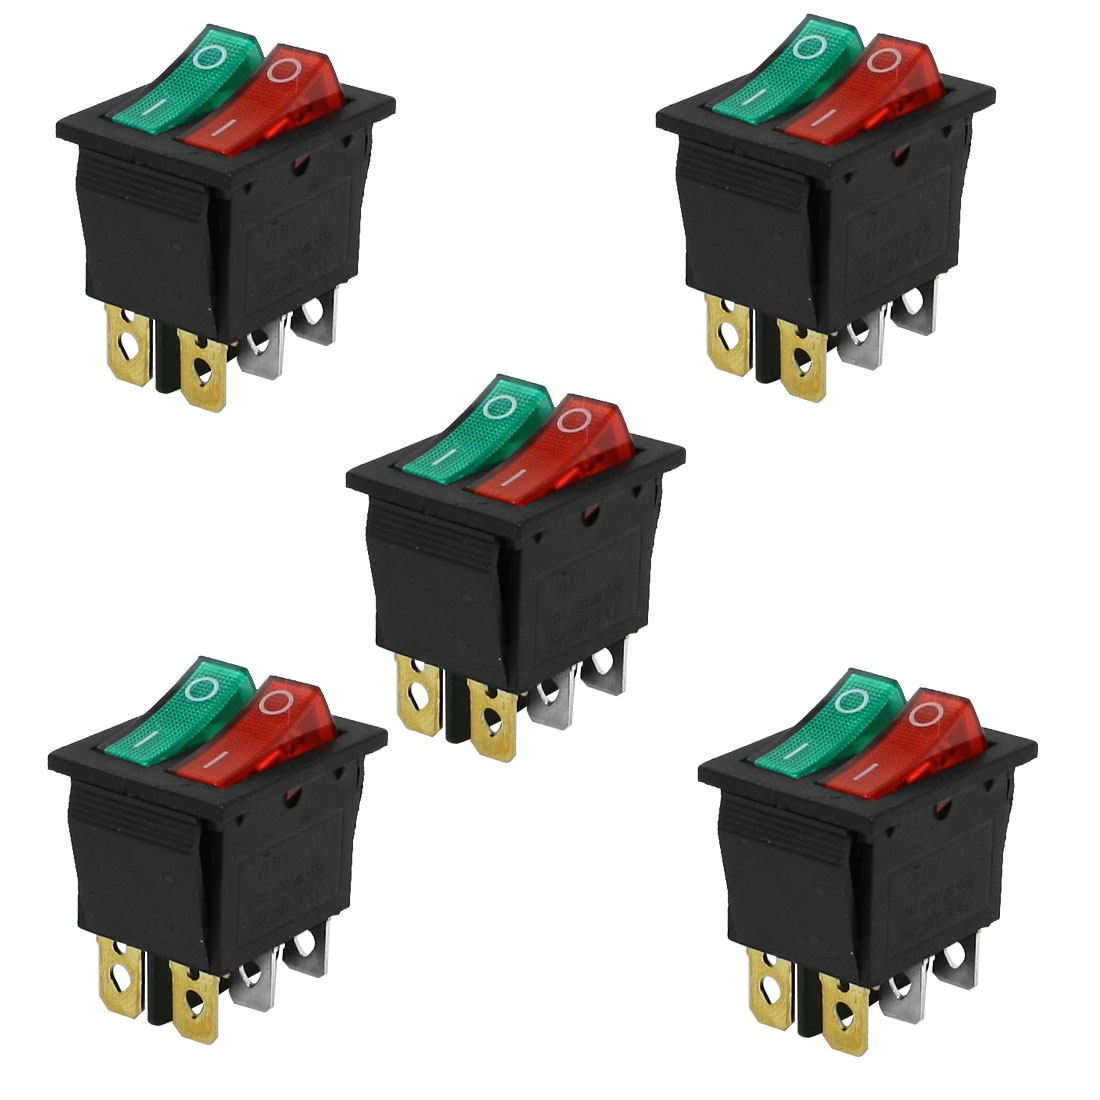 5 Pcs Double Red Green Light Lamp 6 Pins SPST ON/OFF Snap in Boat Rocker Switch